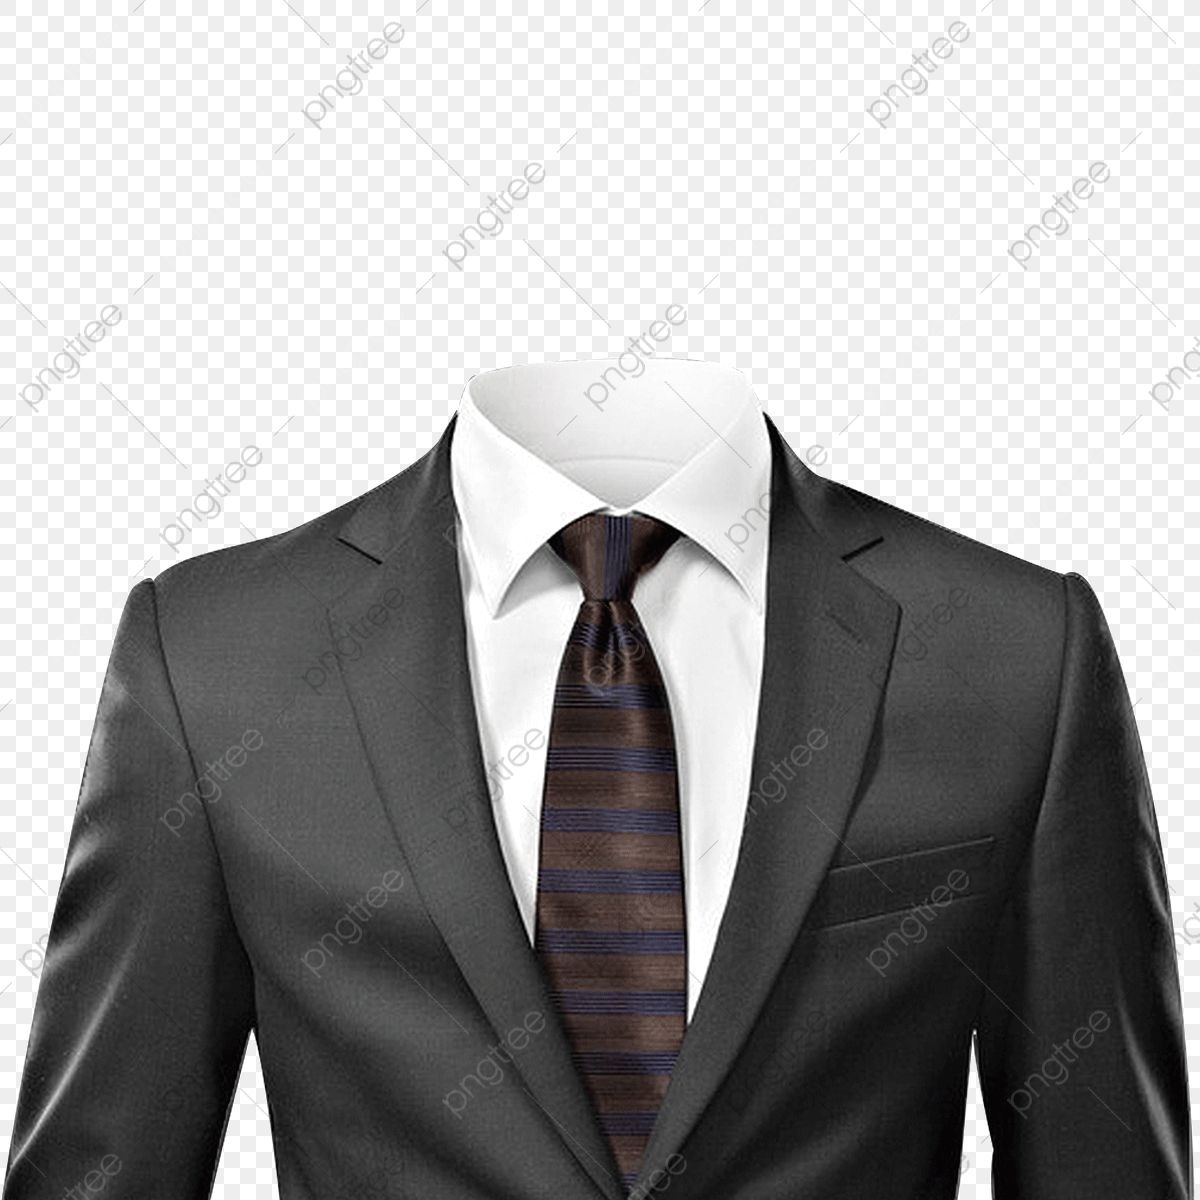 Black Suit Clothes Suit Menamp Png Transparent Clipart Image And Psd File For Free Download Psd Free Photoshop Free Photoshop Black Suits